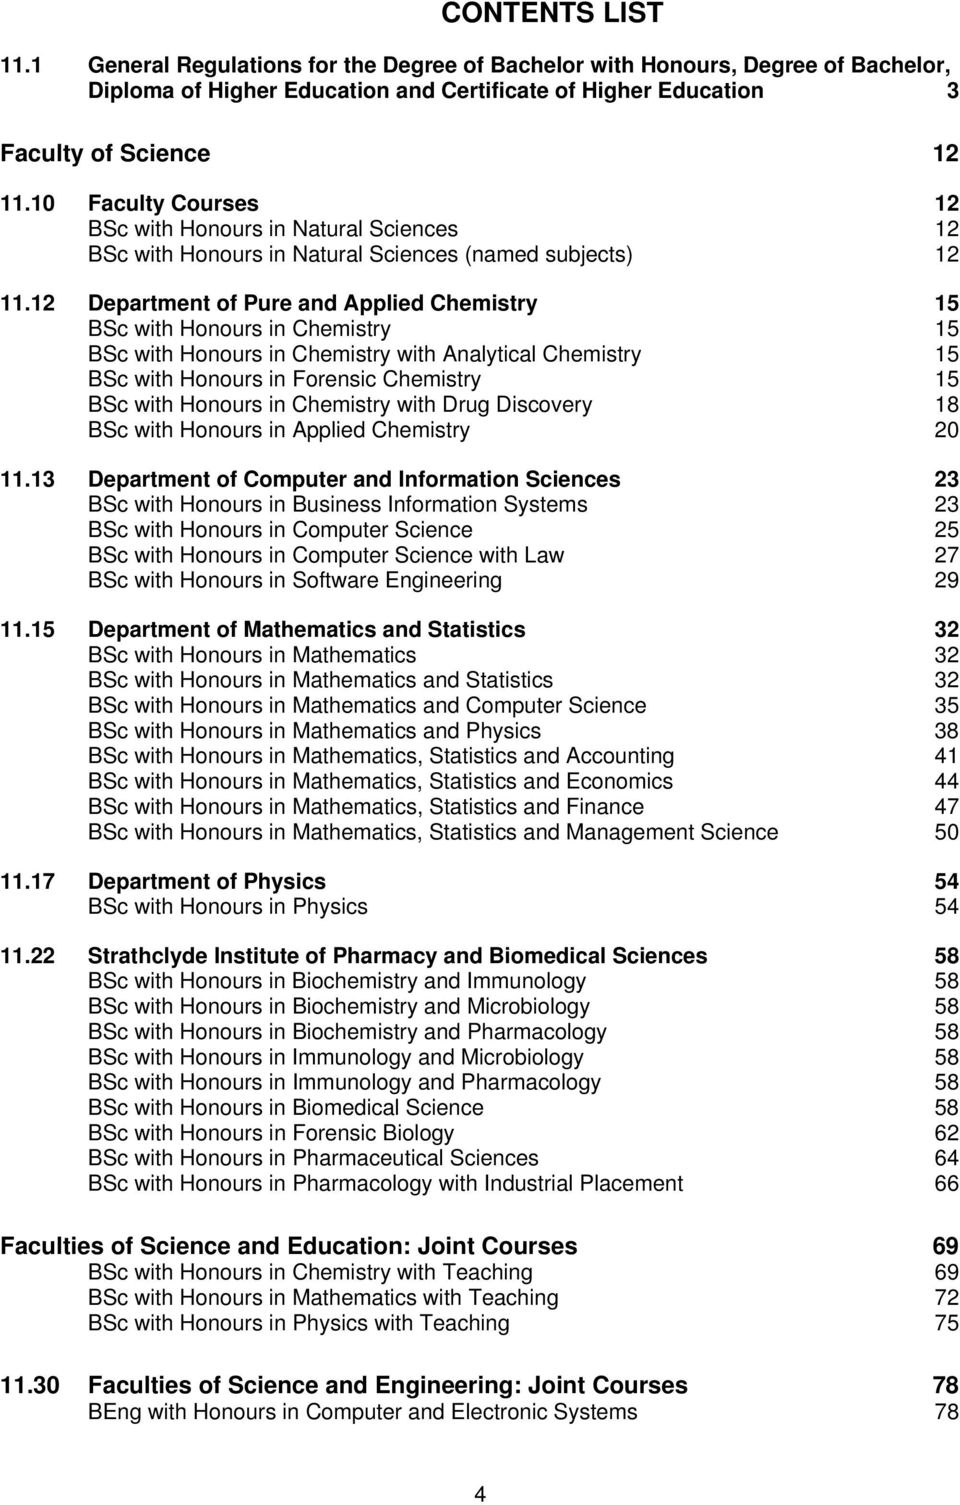 12 Department of Pure and Applied Chemistry 15 BSc with Honours in Chemistry 15 BSc with Honours in Chemistry with Analytical Chemistry 15 BSc with Honours in Forensic Chemistry 15 BSc with Honours